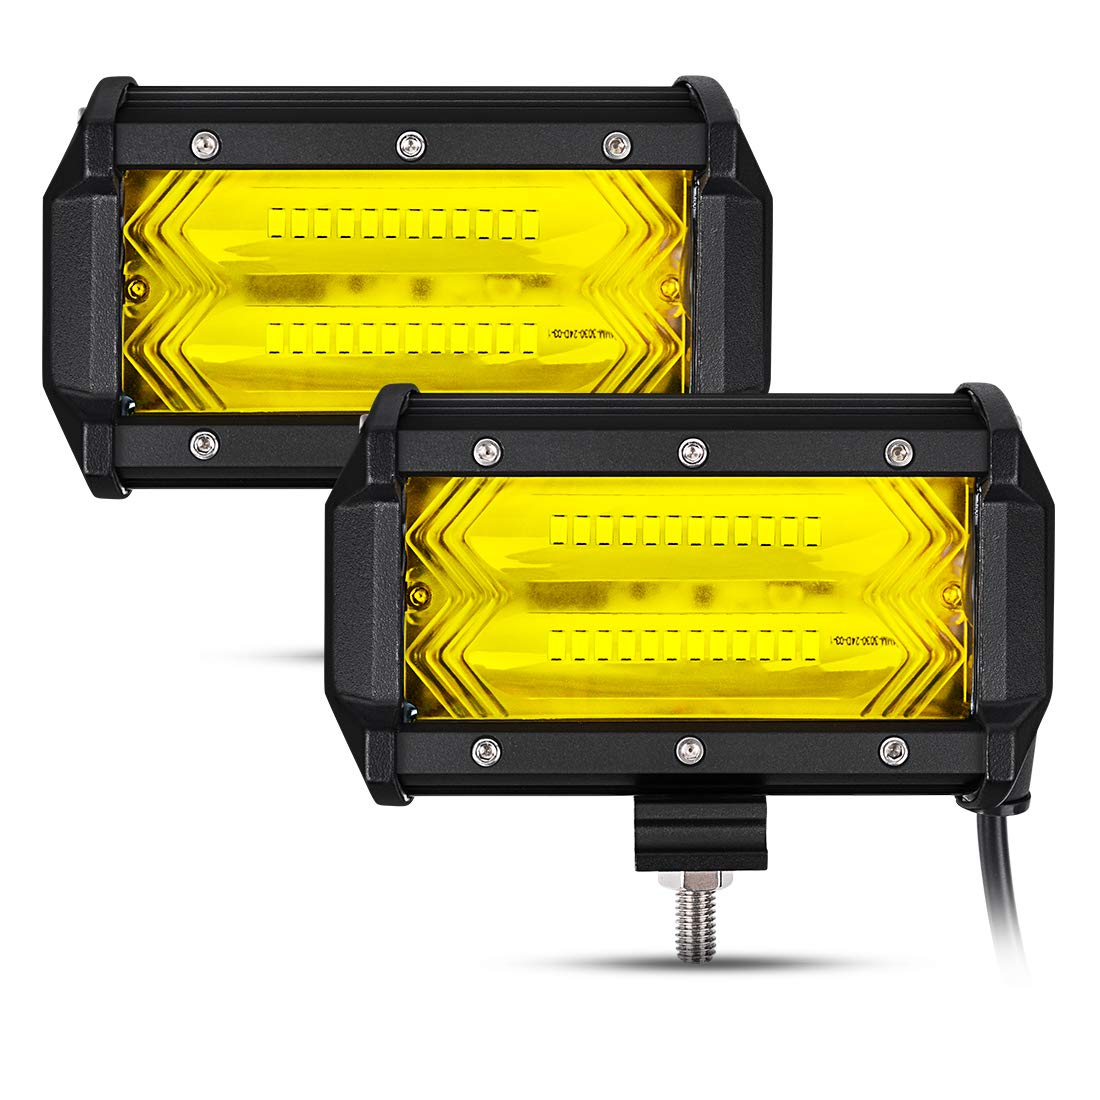 Ansite LED Work Light Bar 2Pcs 4 36W Amber Spot Beam Osram Chips Driving Fog Light Waterproof for Off-road Car ATV SUV Jeep Boat